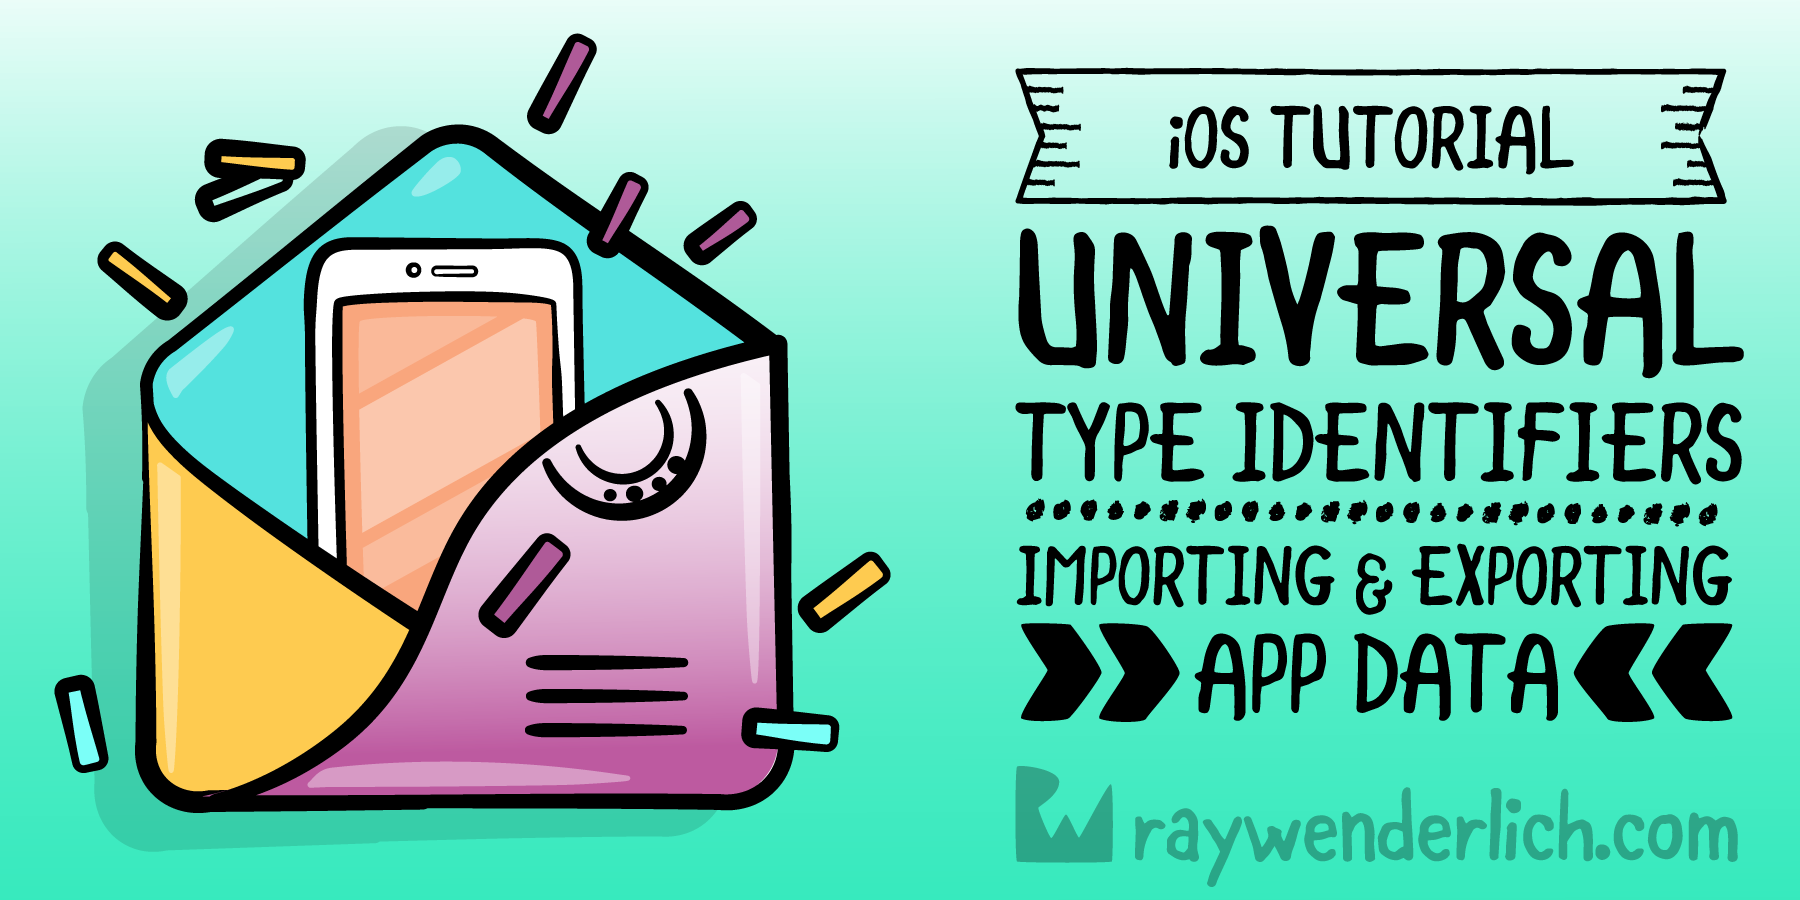 Universal Type Identifiers Tutorial for iOS: Importing and Exporting App Data [FREE]